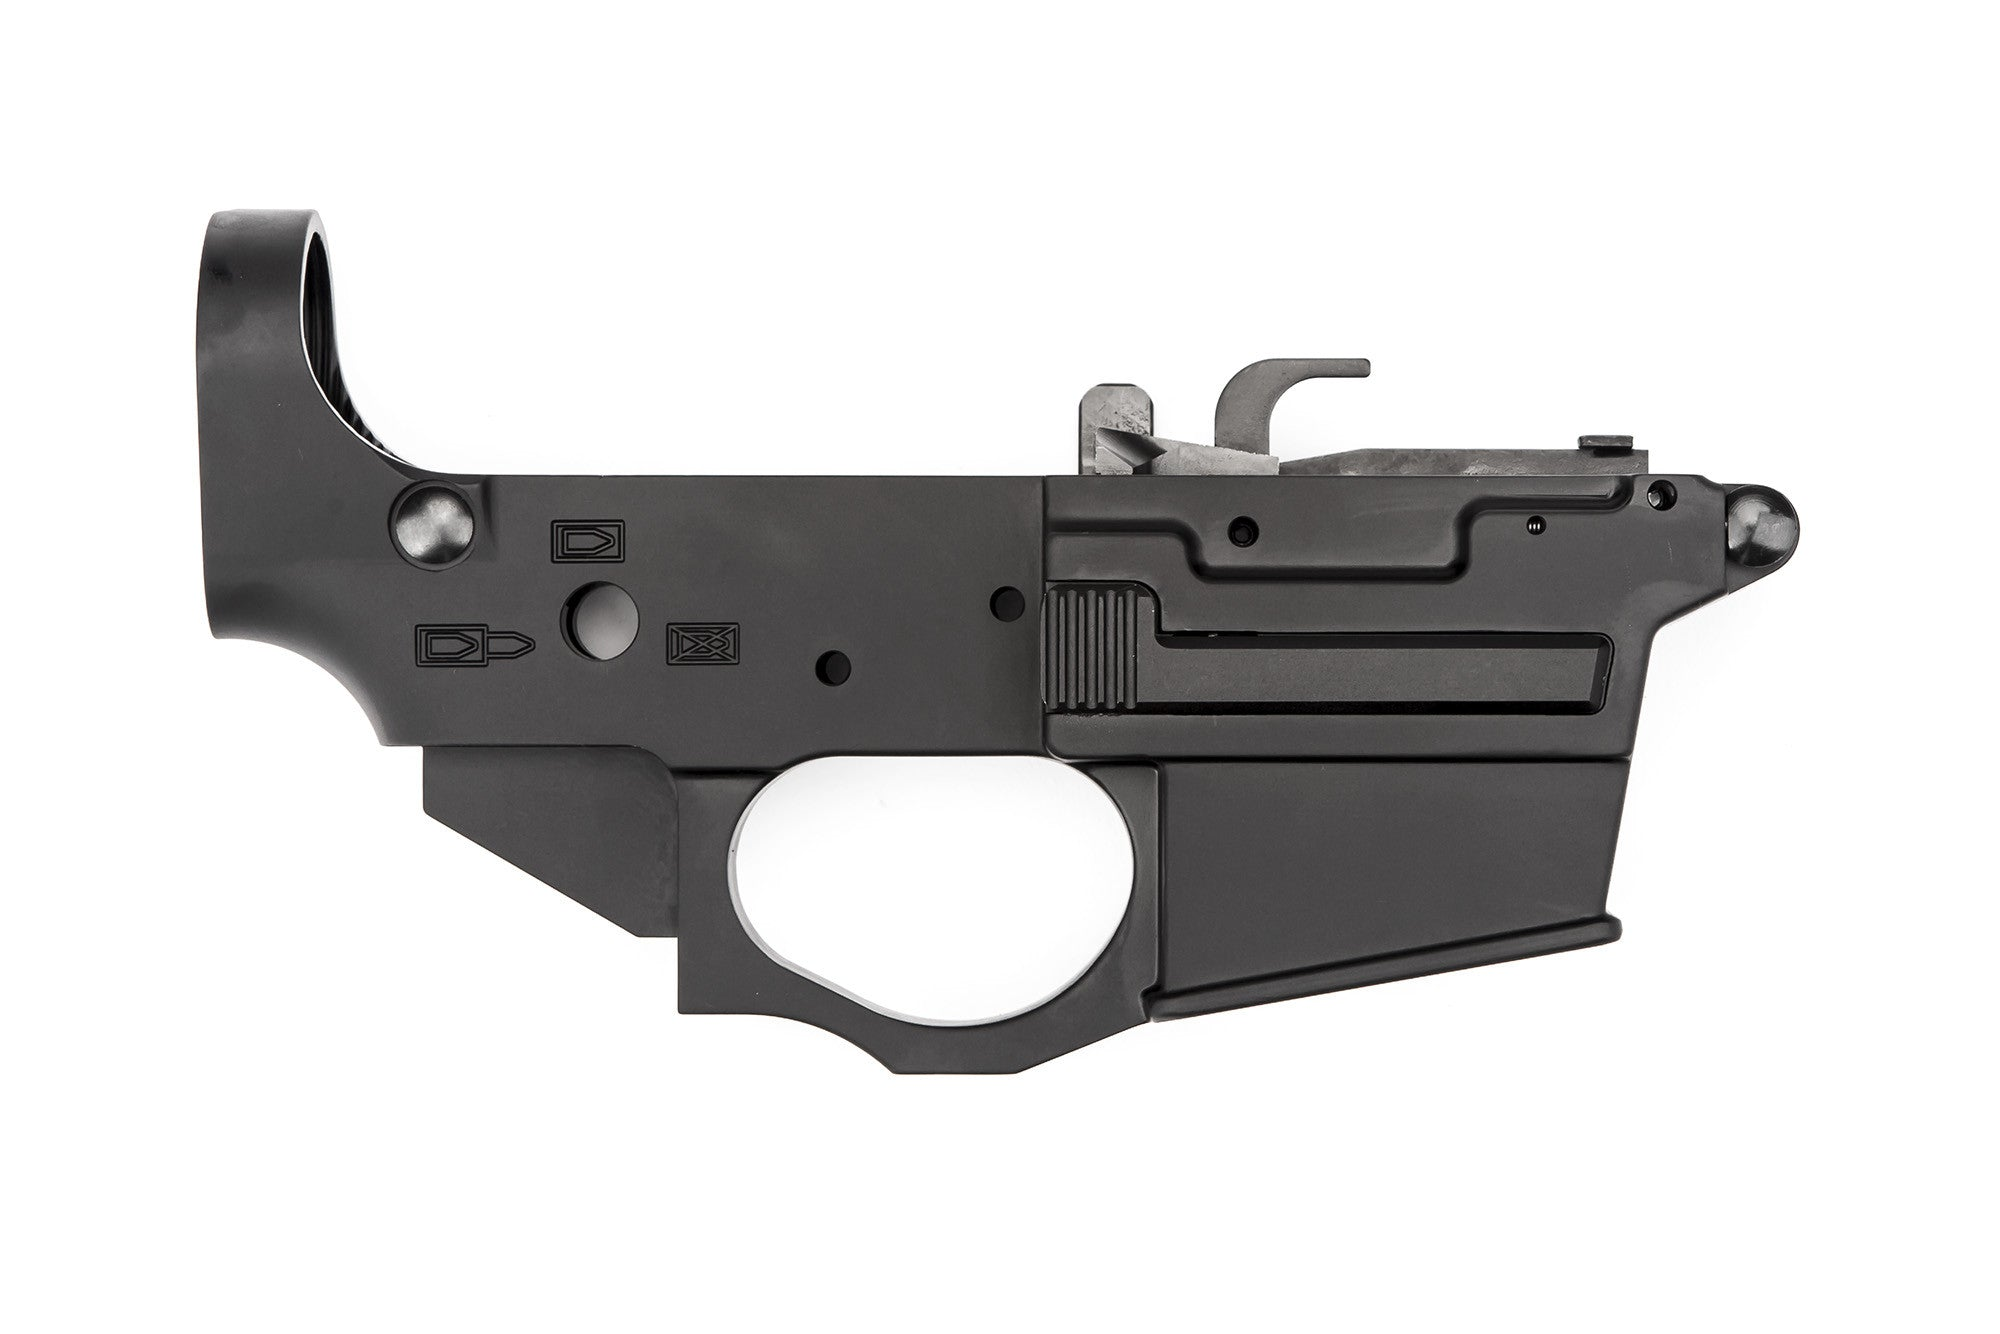 9mm Spider Stripped Lower Receiver